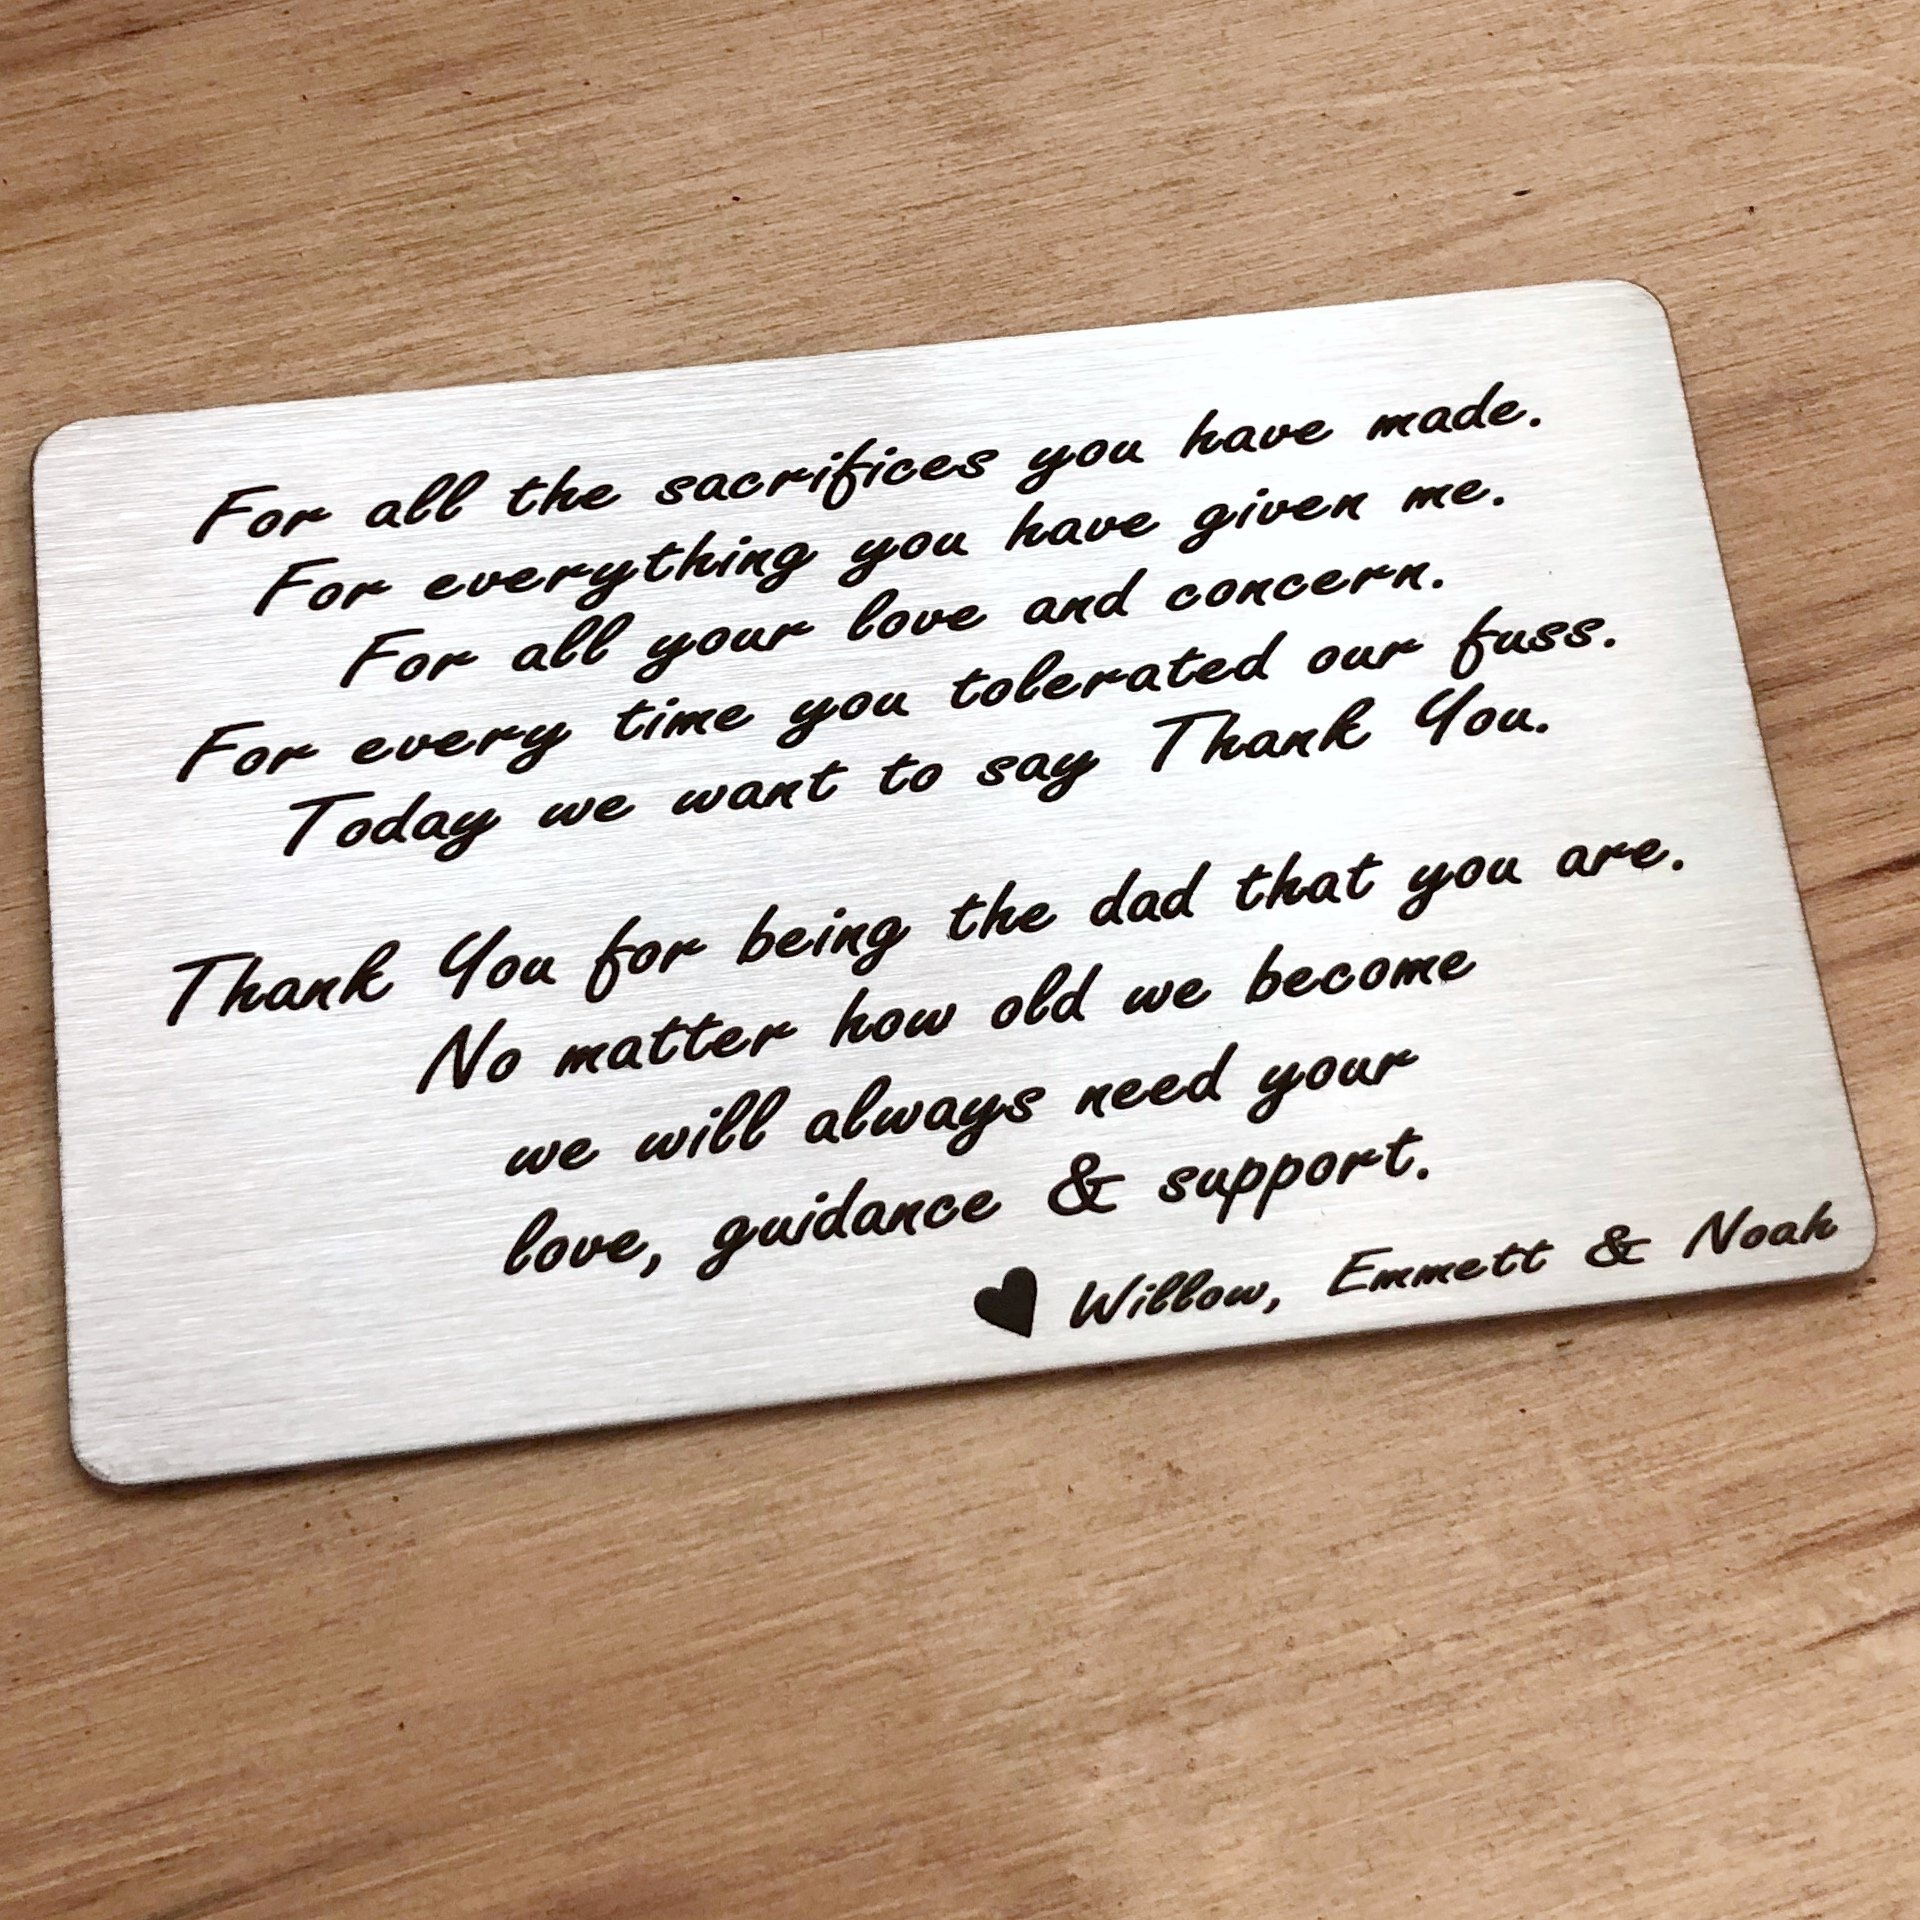 Thank You Dad Engraved Wallet Insert Letter To Dad Letter To Dad Engraved Wallet Engraved Wallet Cards